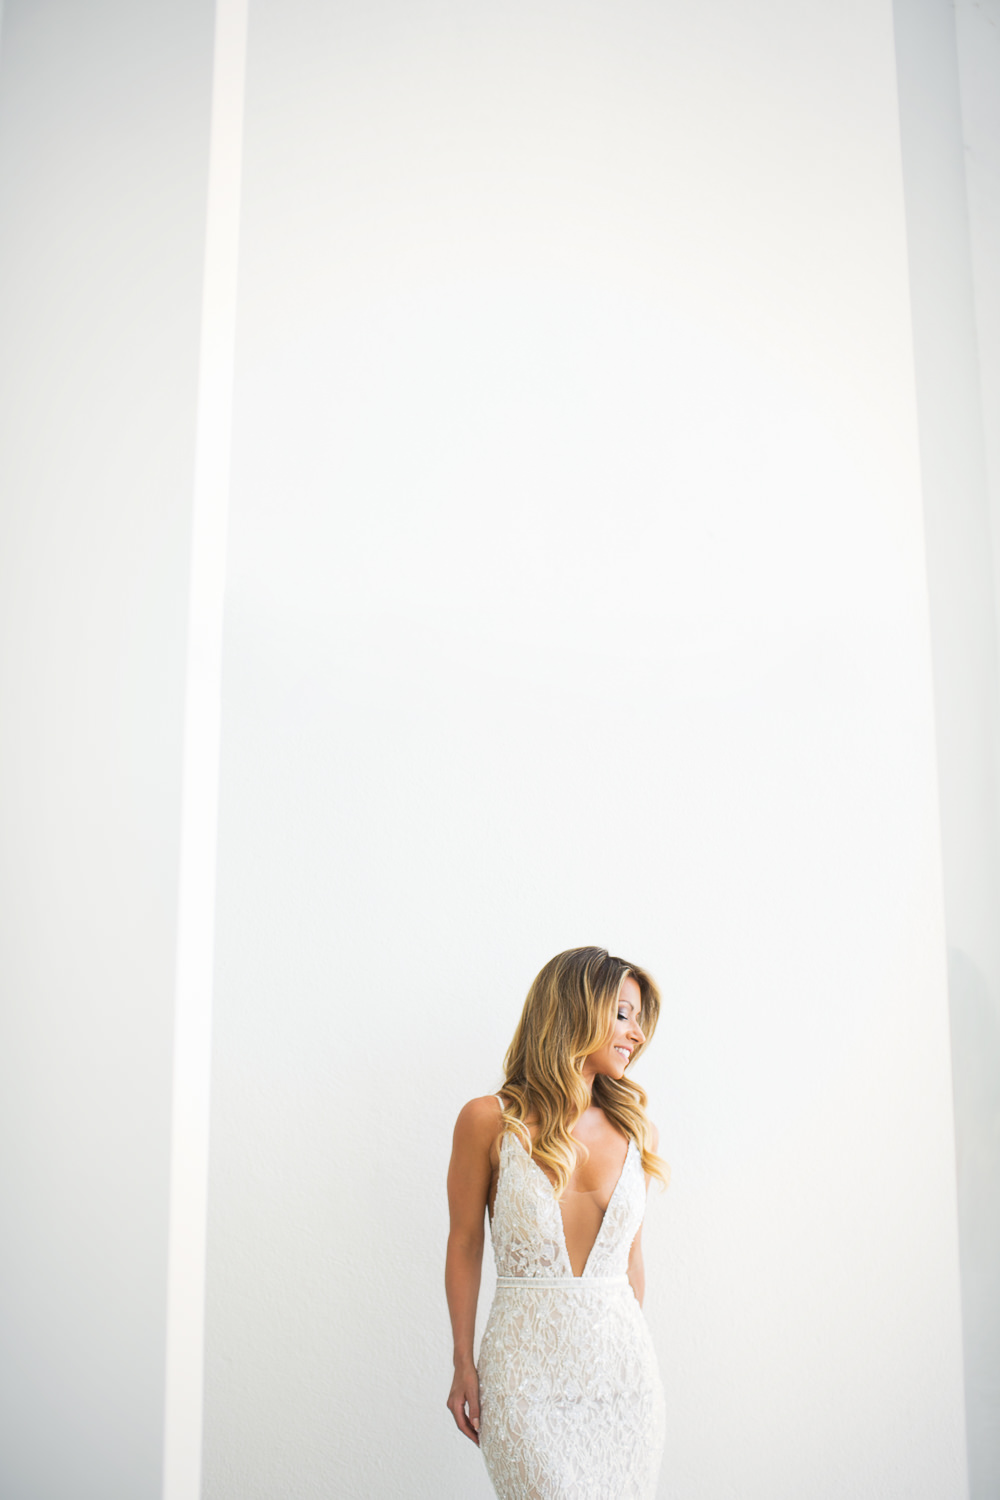 Viceroy Los Cabos Wedding - Brides portrait with the white backdrop